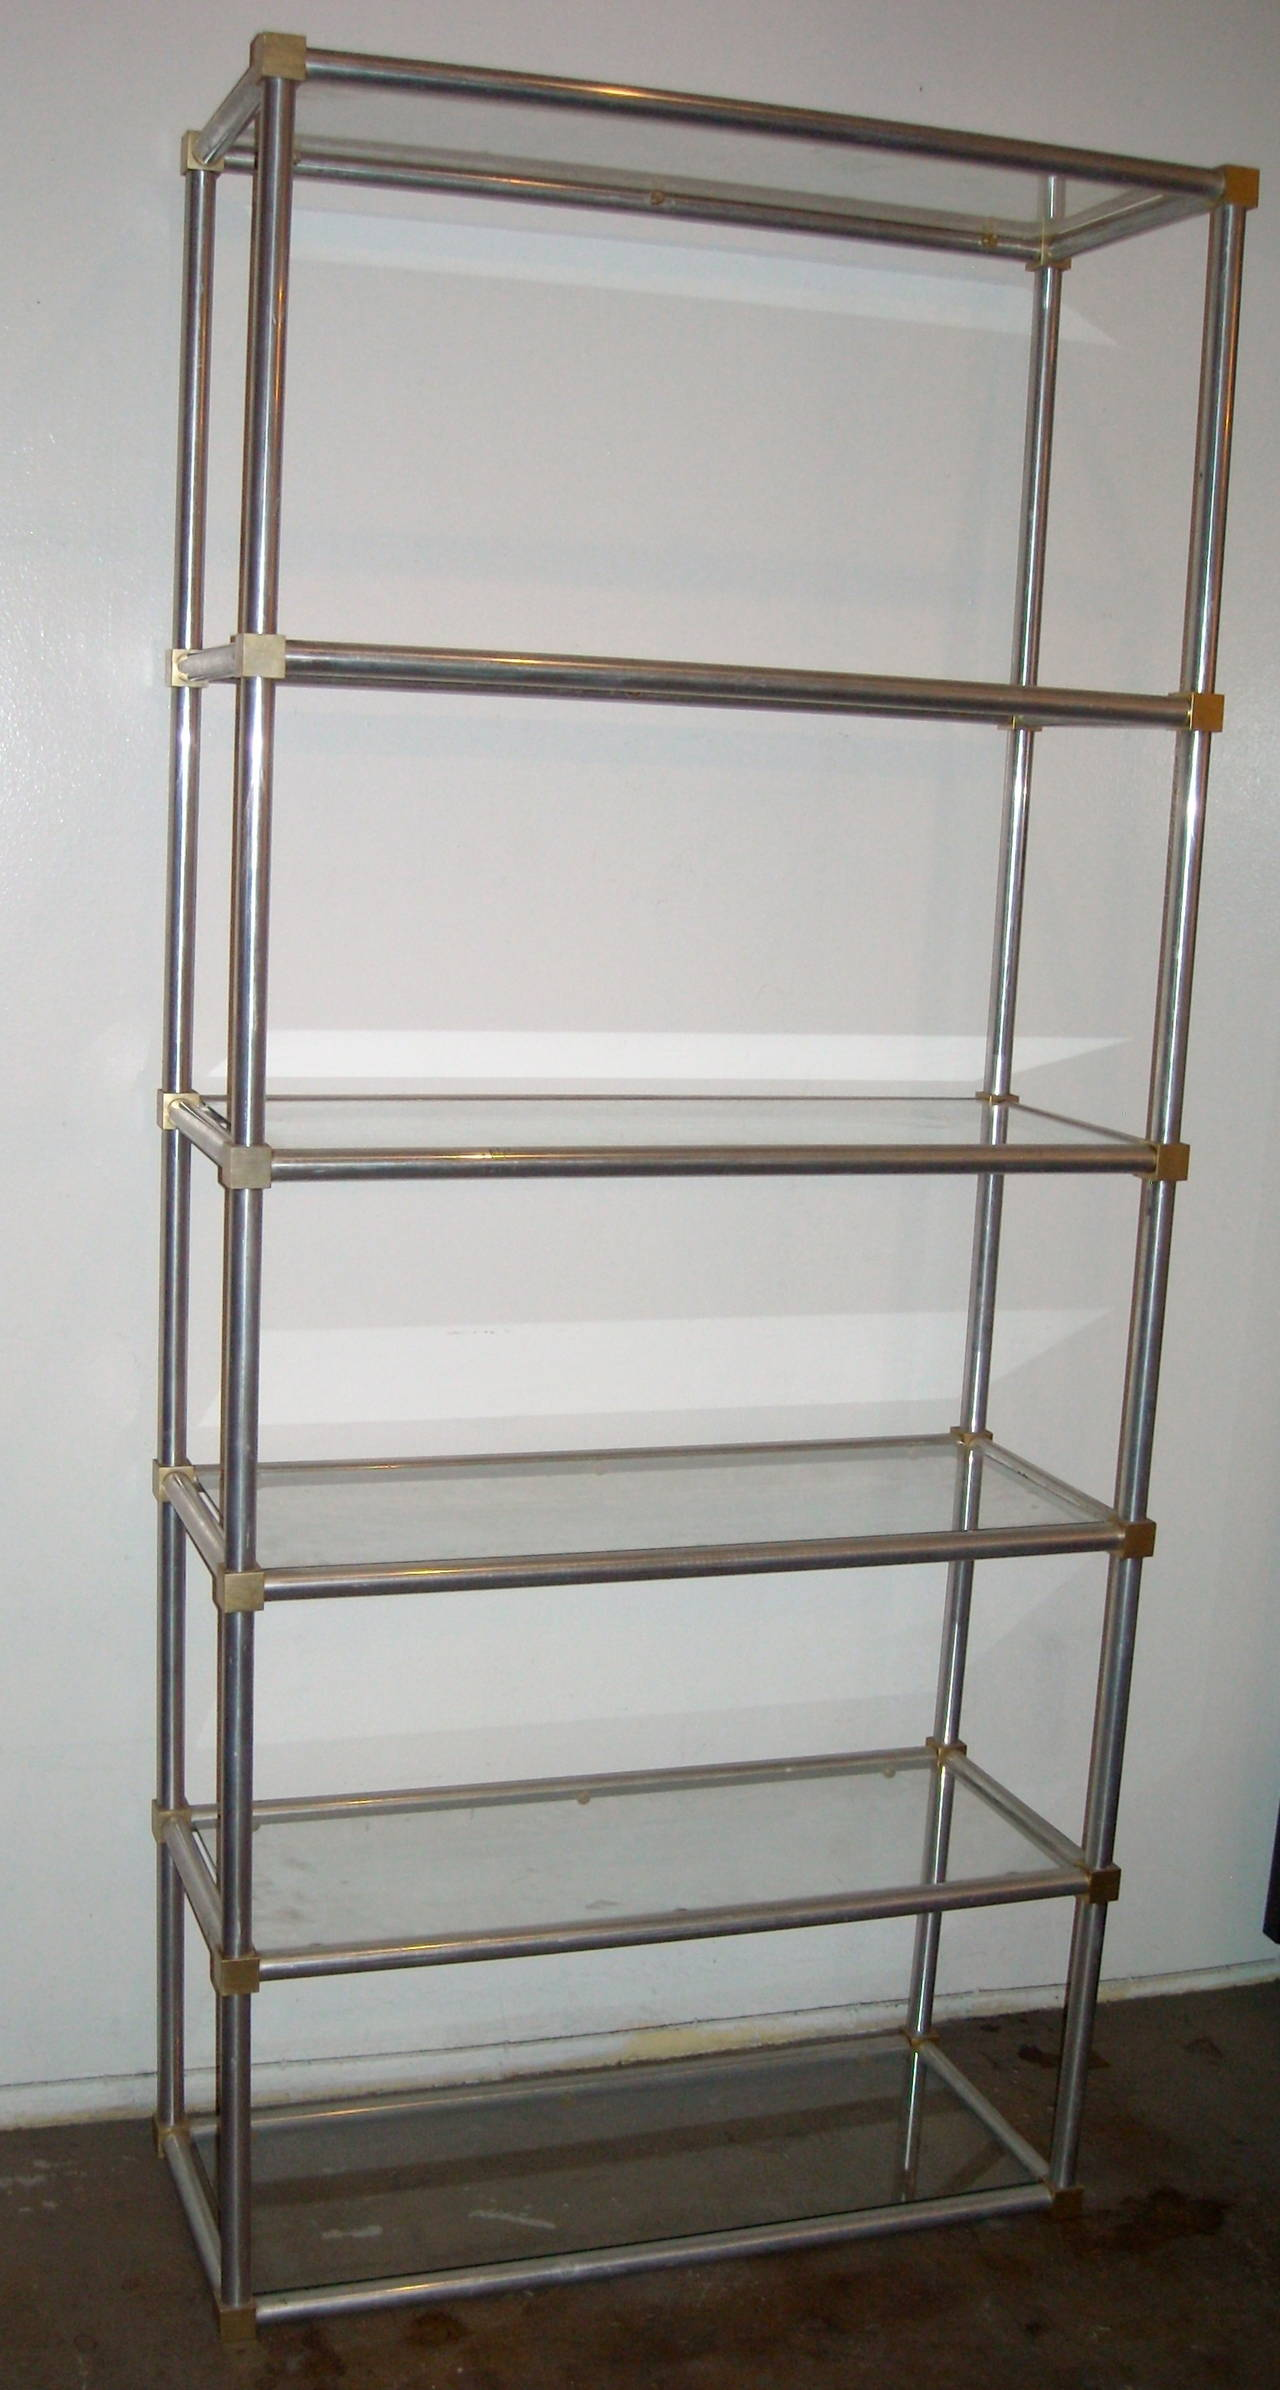 John vesey in the jansen style etagere in satin polished aluminum and brass f - Etagere aluminium design ...